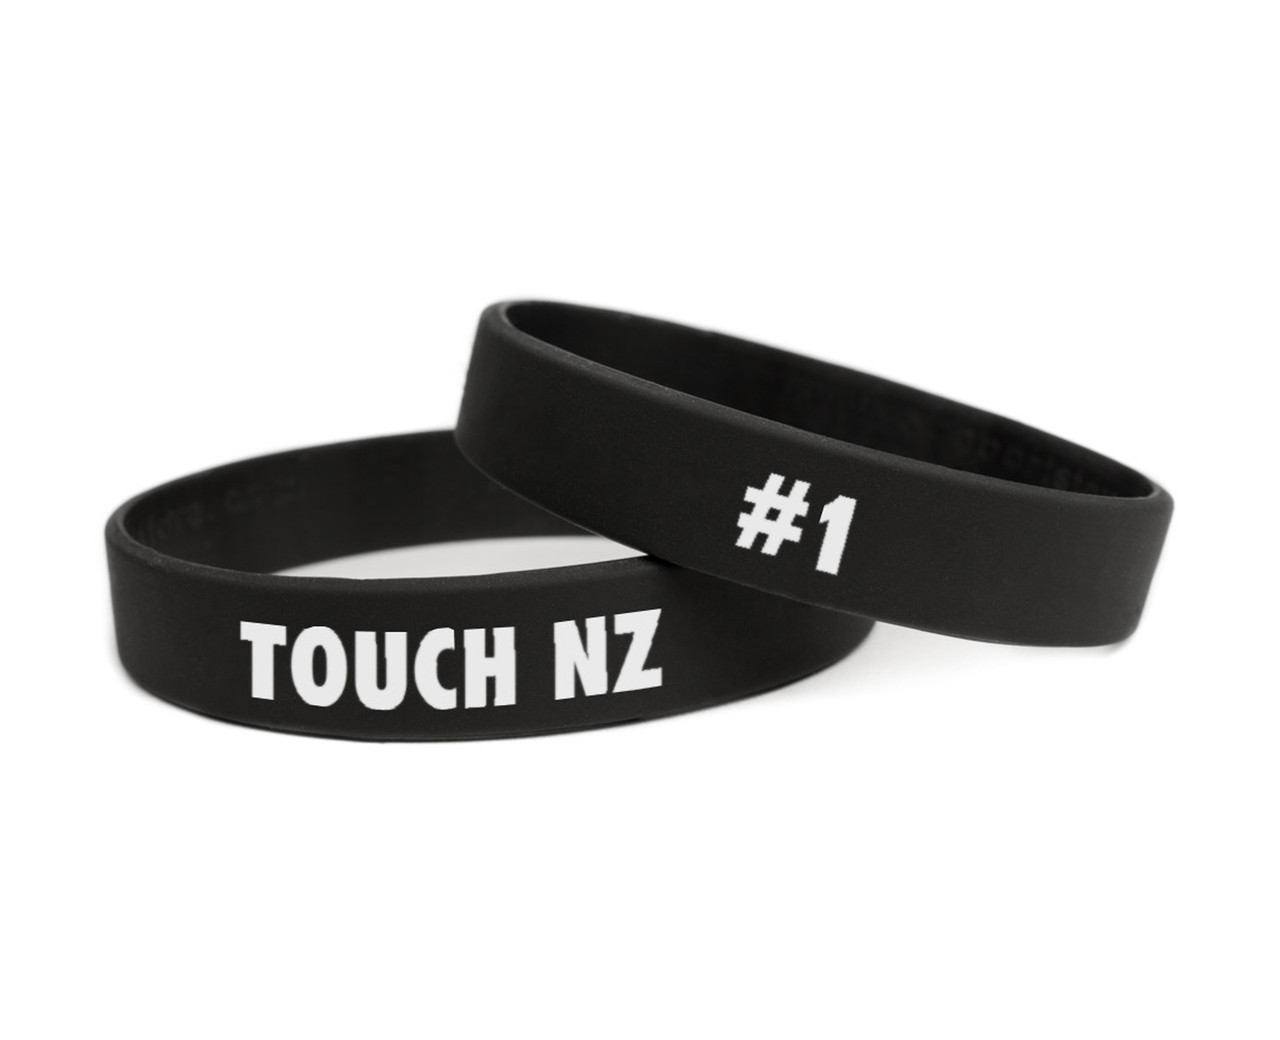 Touch NZ Numbered Wrist Bands (set of 16) - Touch NZ Store